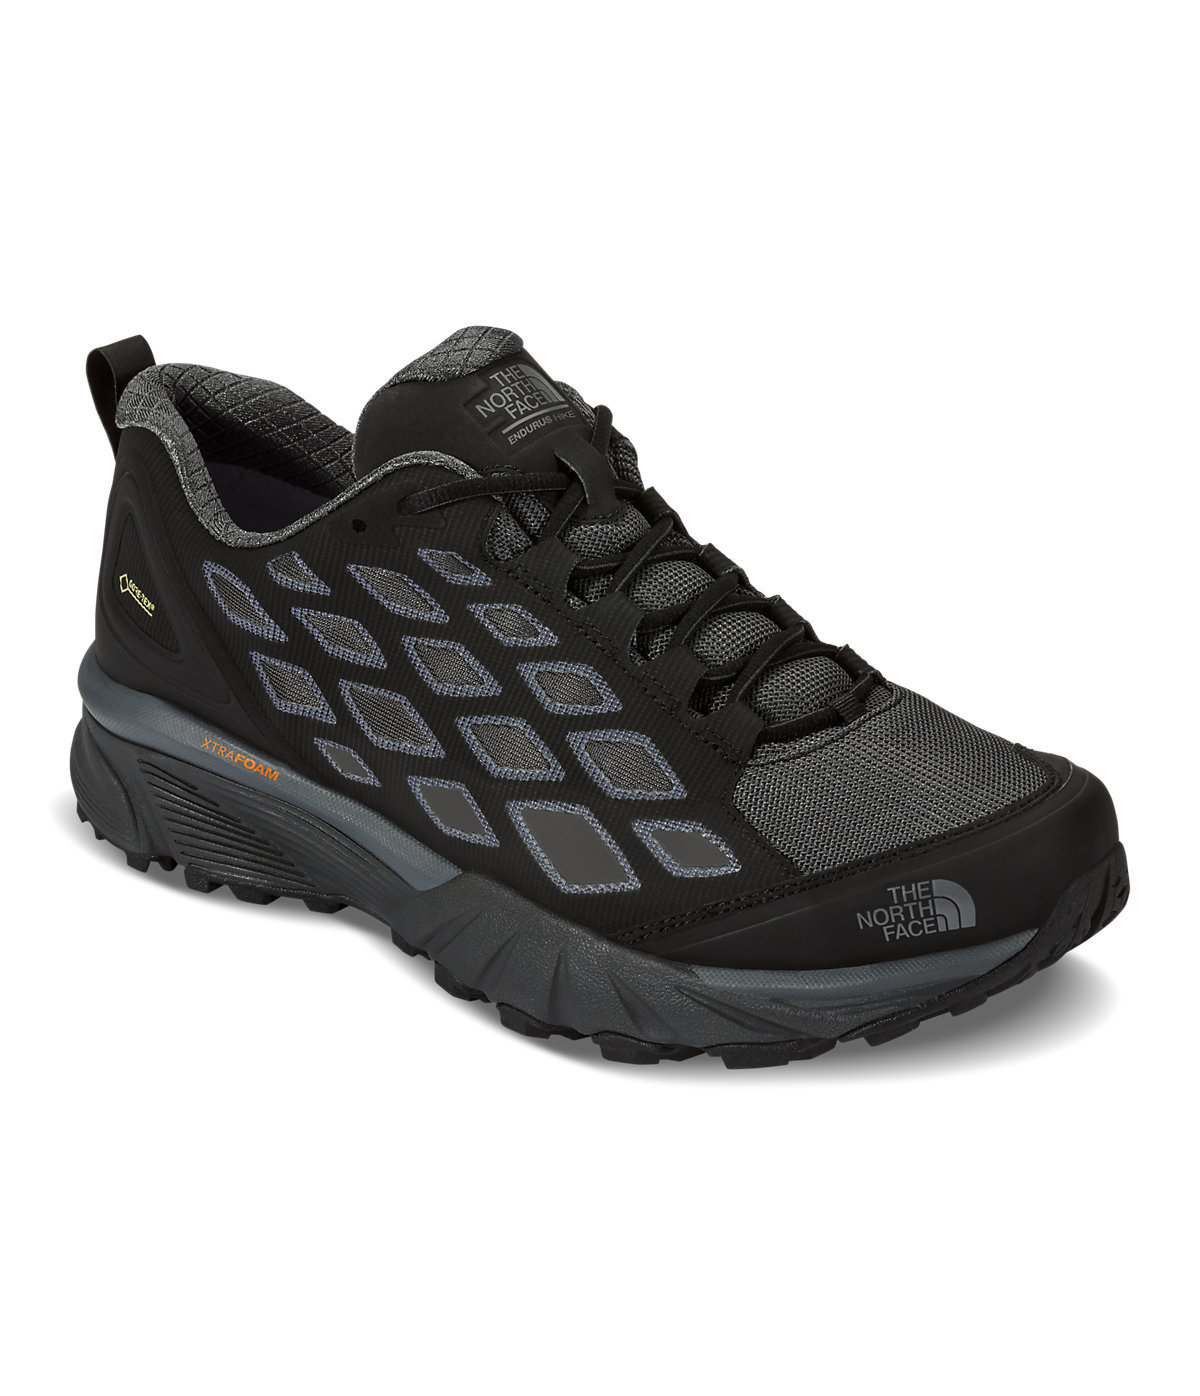 ee44e9d0076 The North Face Mens Endurus Hike GTX Waterproof Hiking Shoes ...